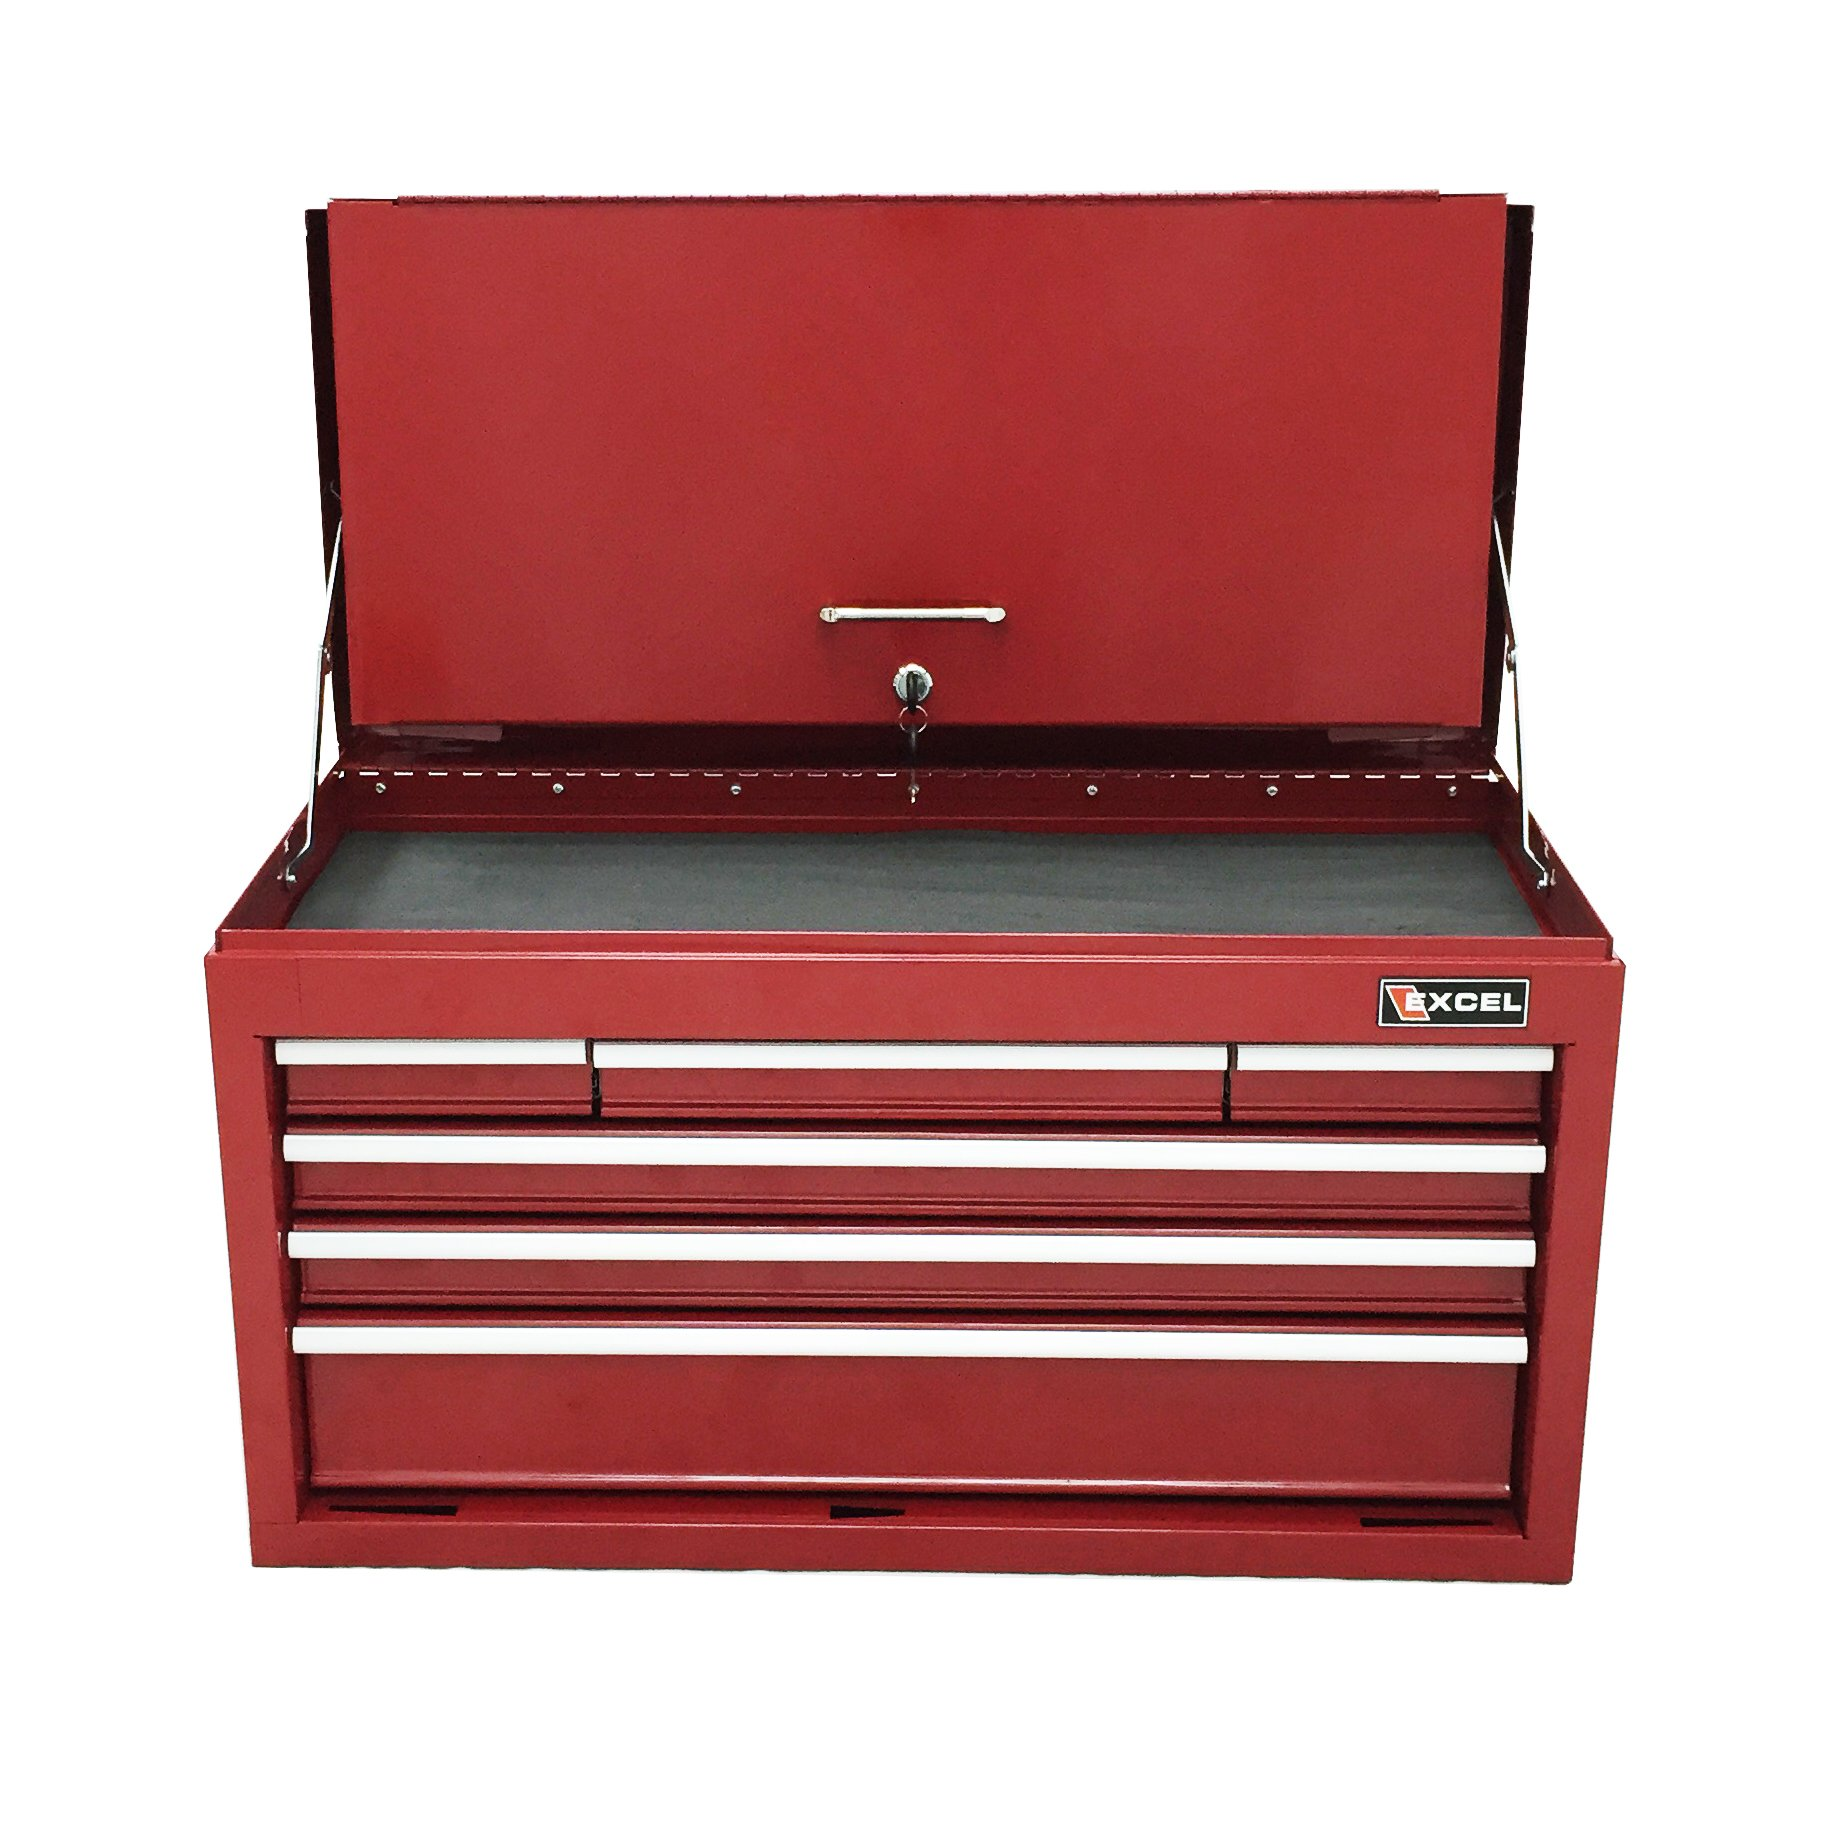 Excel TB2050BBSA-Red 26-Inch Steel Chest, Red